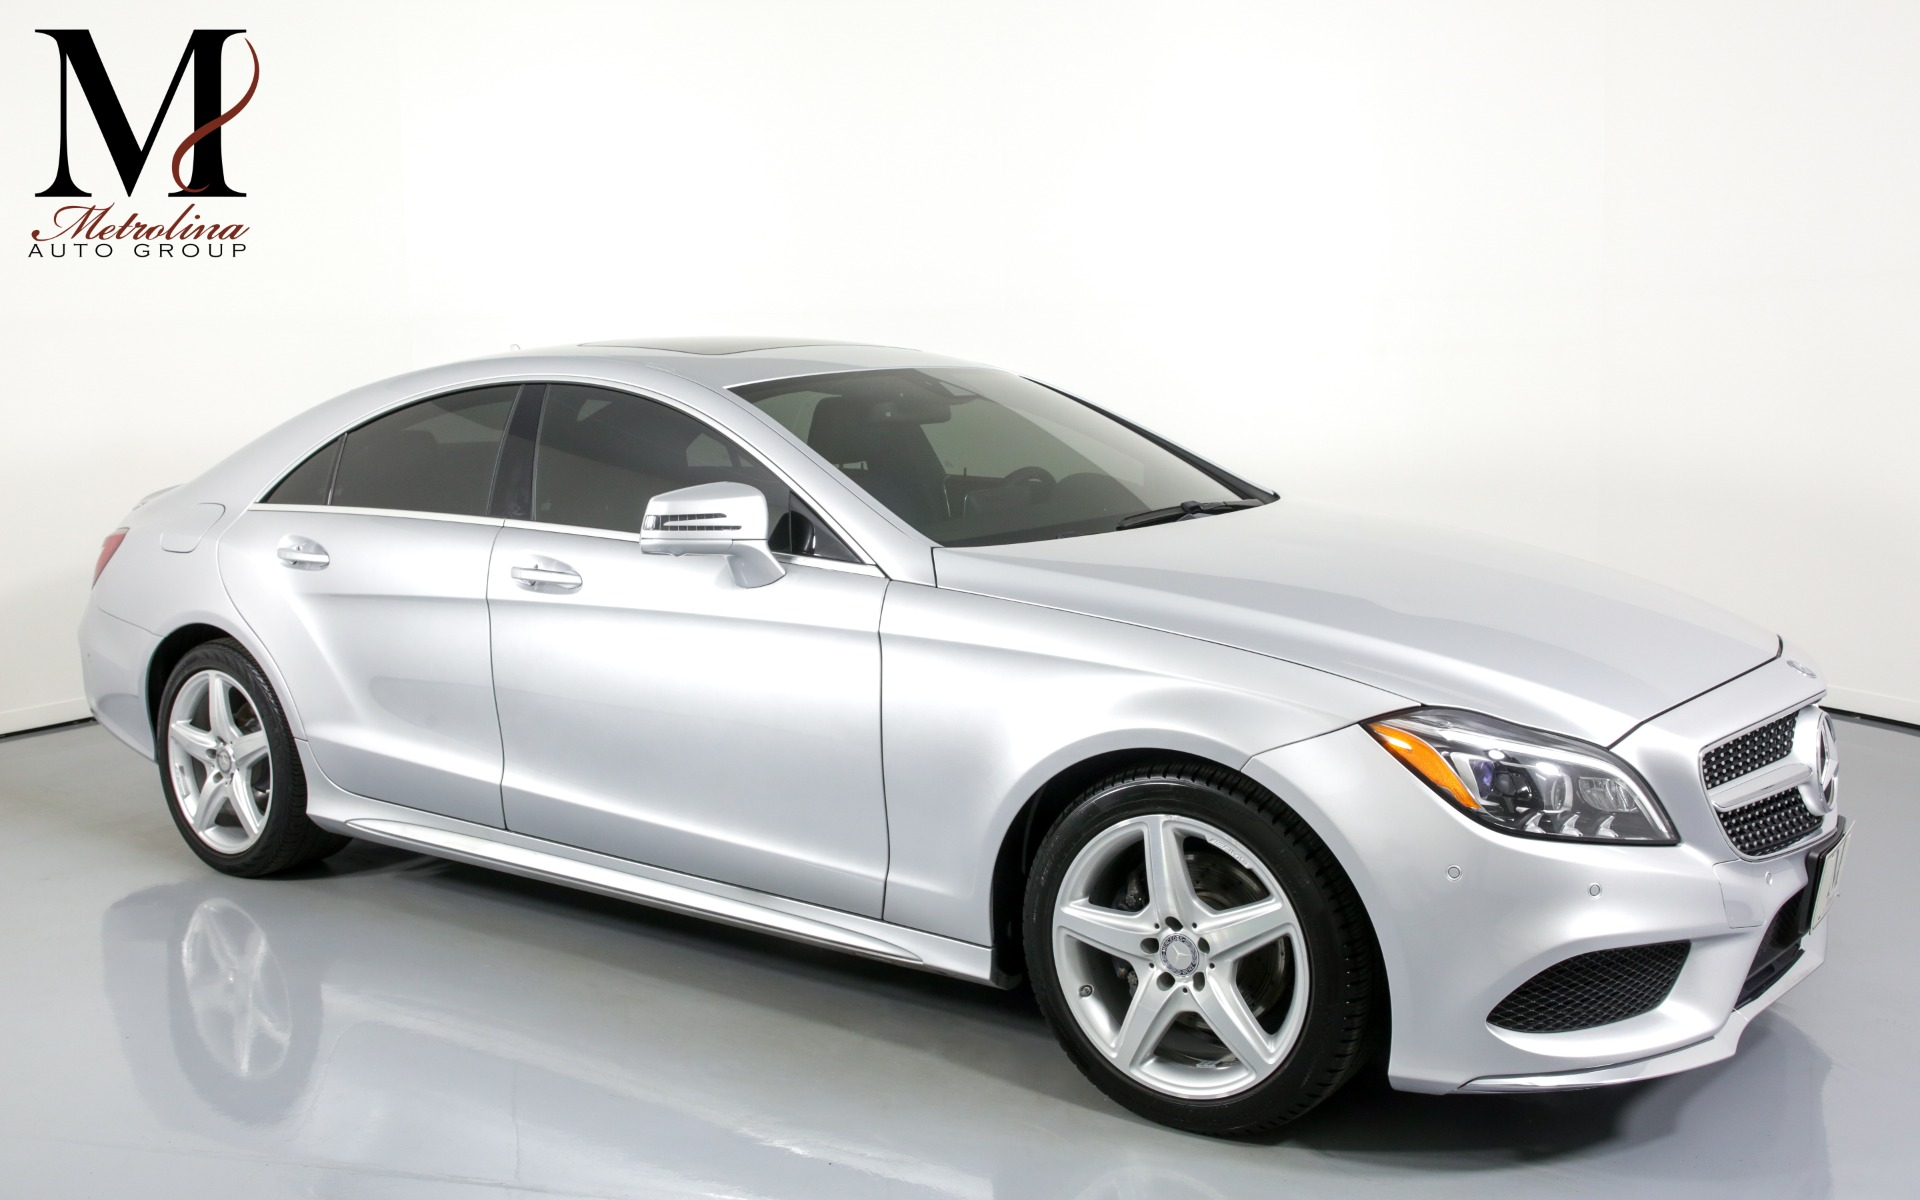 Used 2016 Mercedes-Benz CLS CLS 400 4MATIC AWD 4dr Sedan for sale $27,456 at Metrolina Auto Group in Charlotte NC 28217 - 1